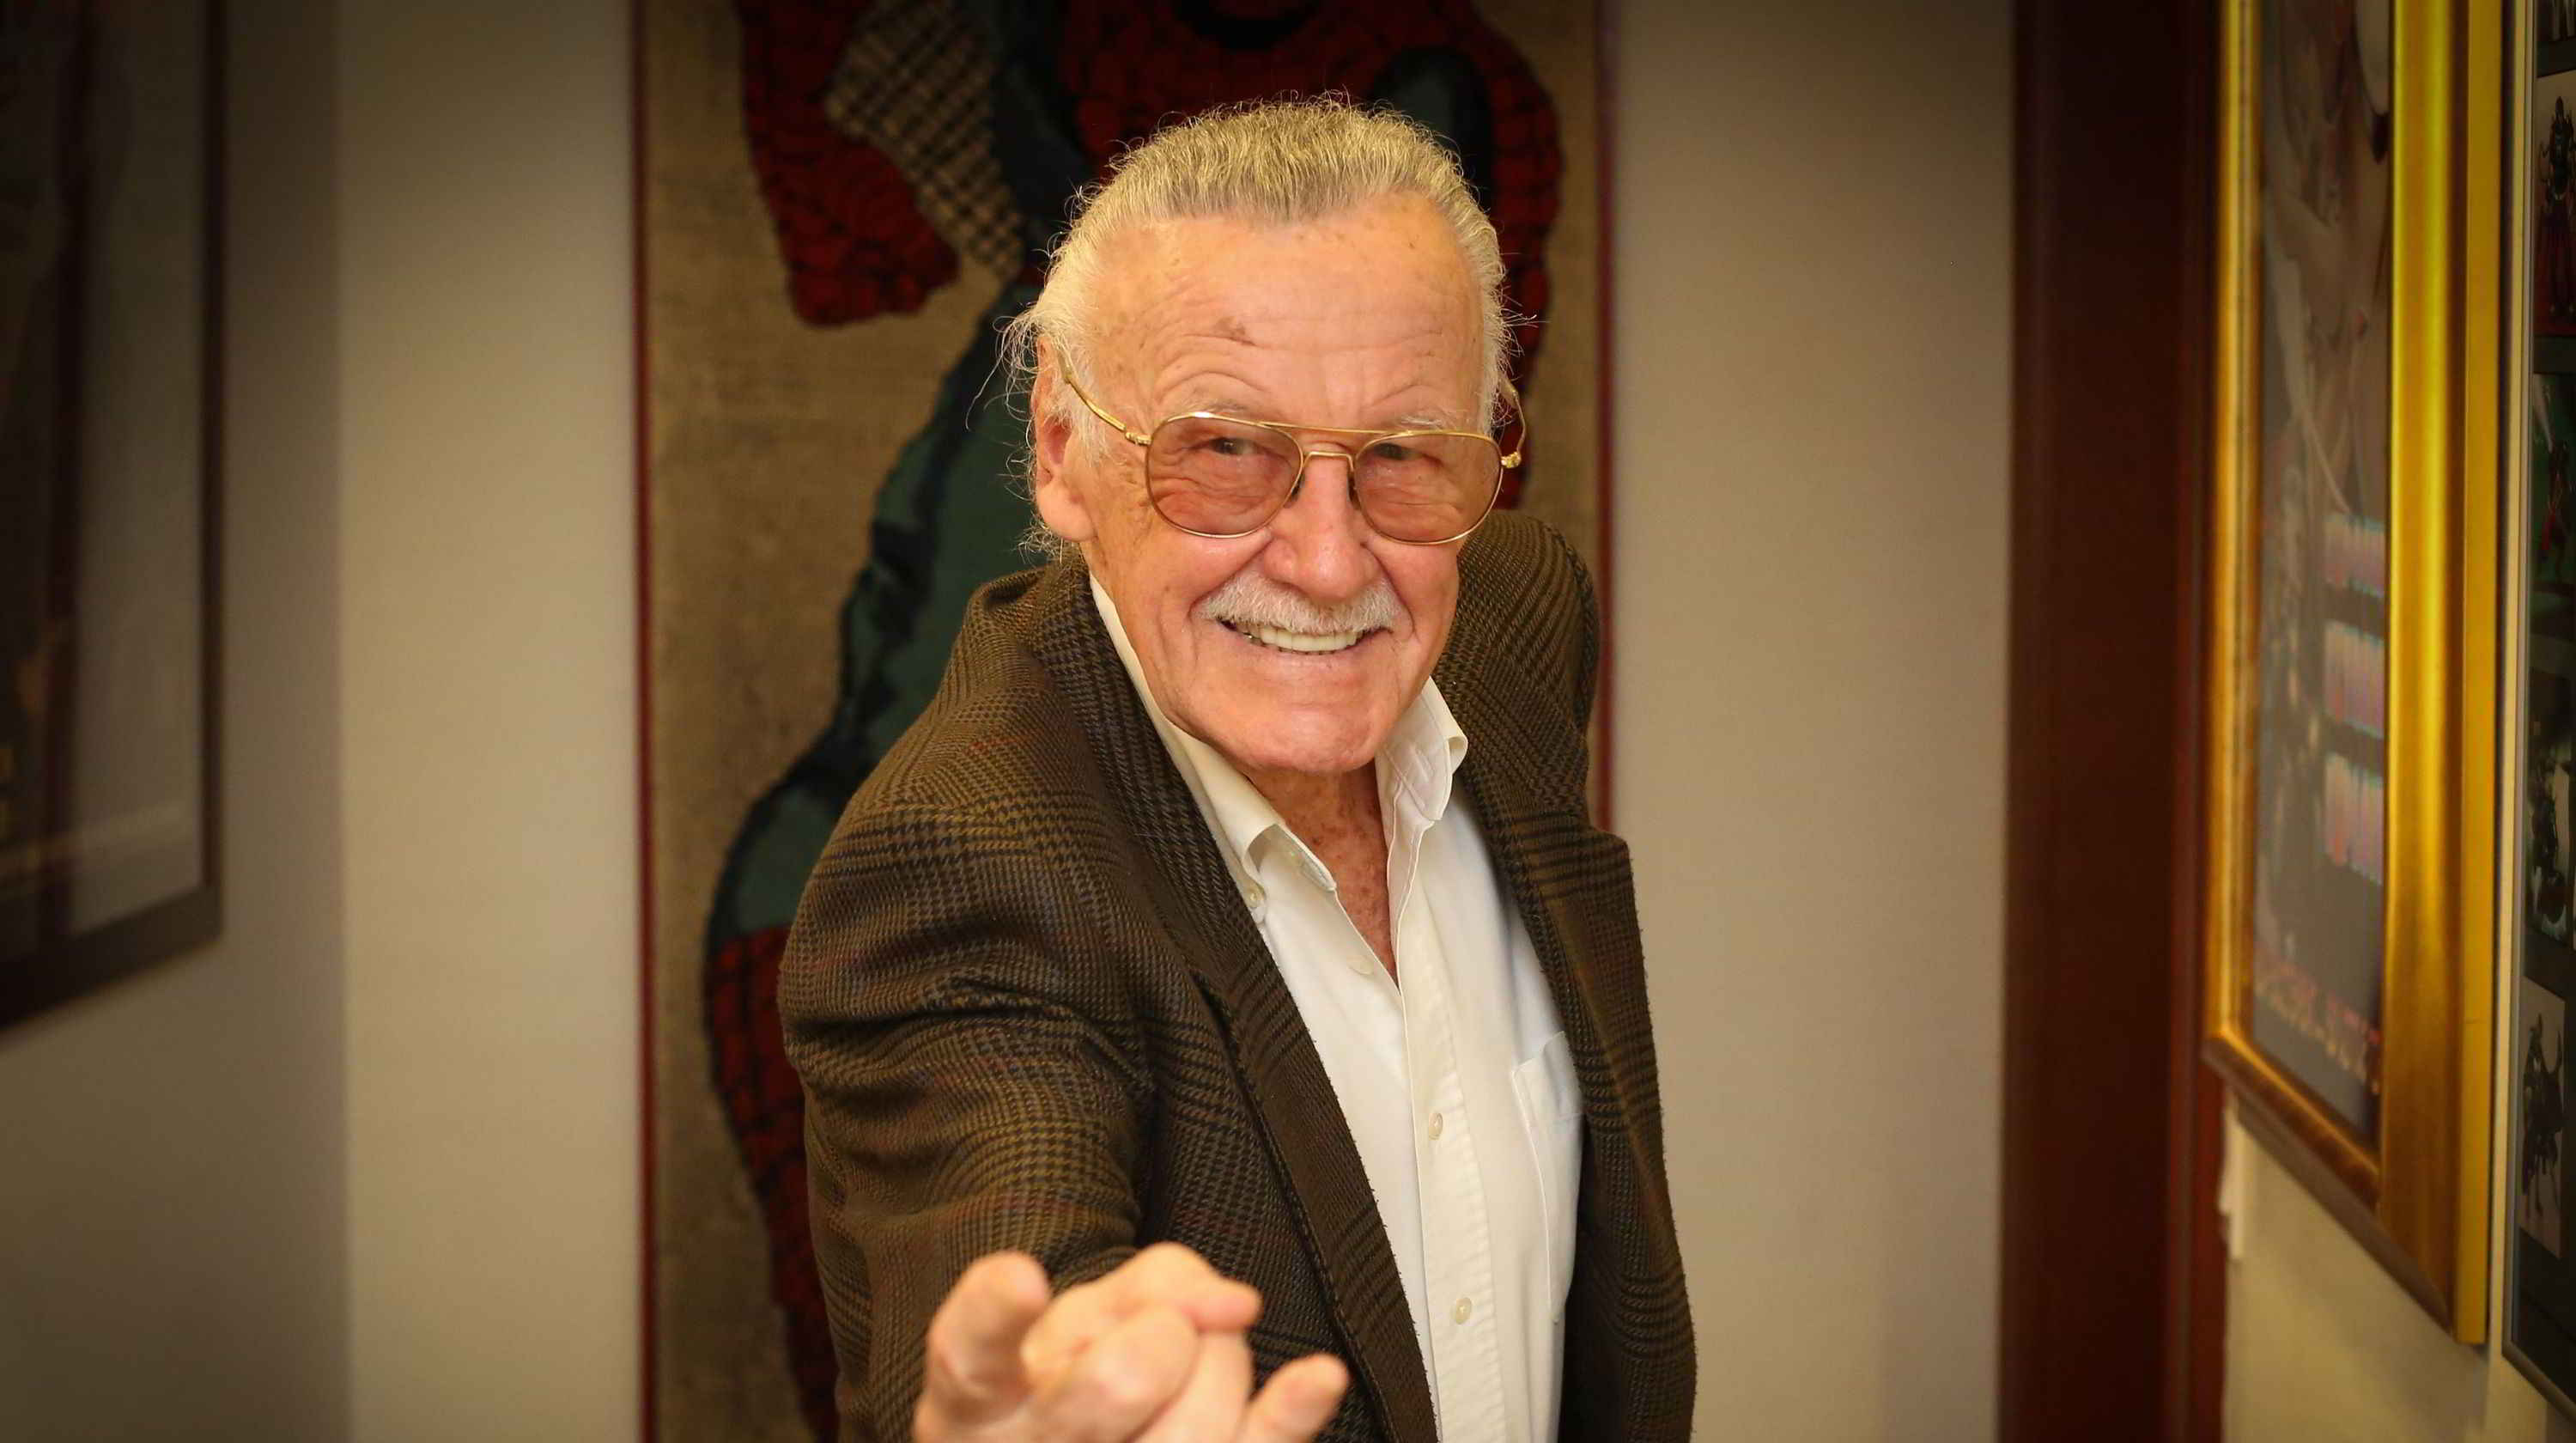 Stan Lee, il suo ultimo cameo in Avengers: Endgame